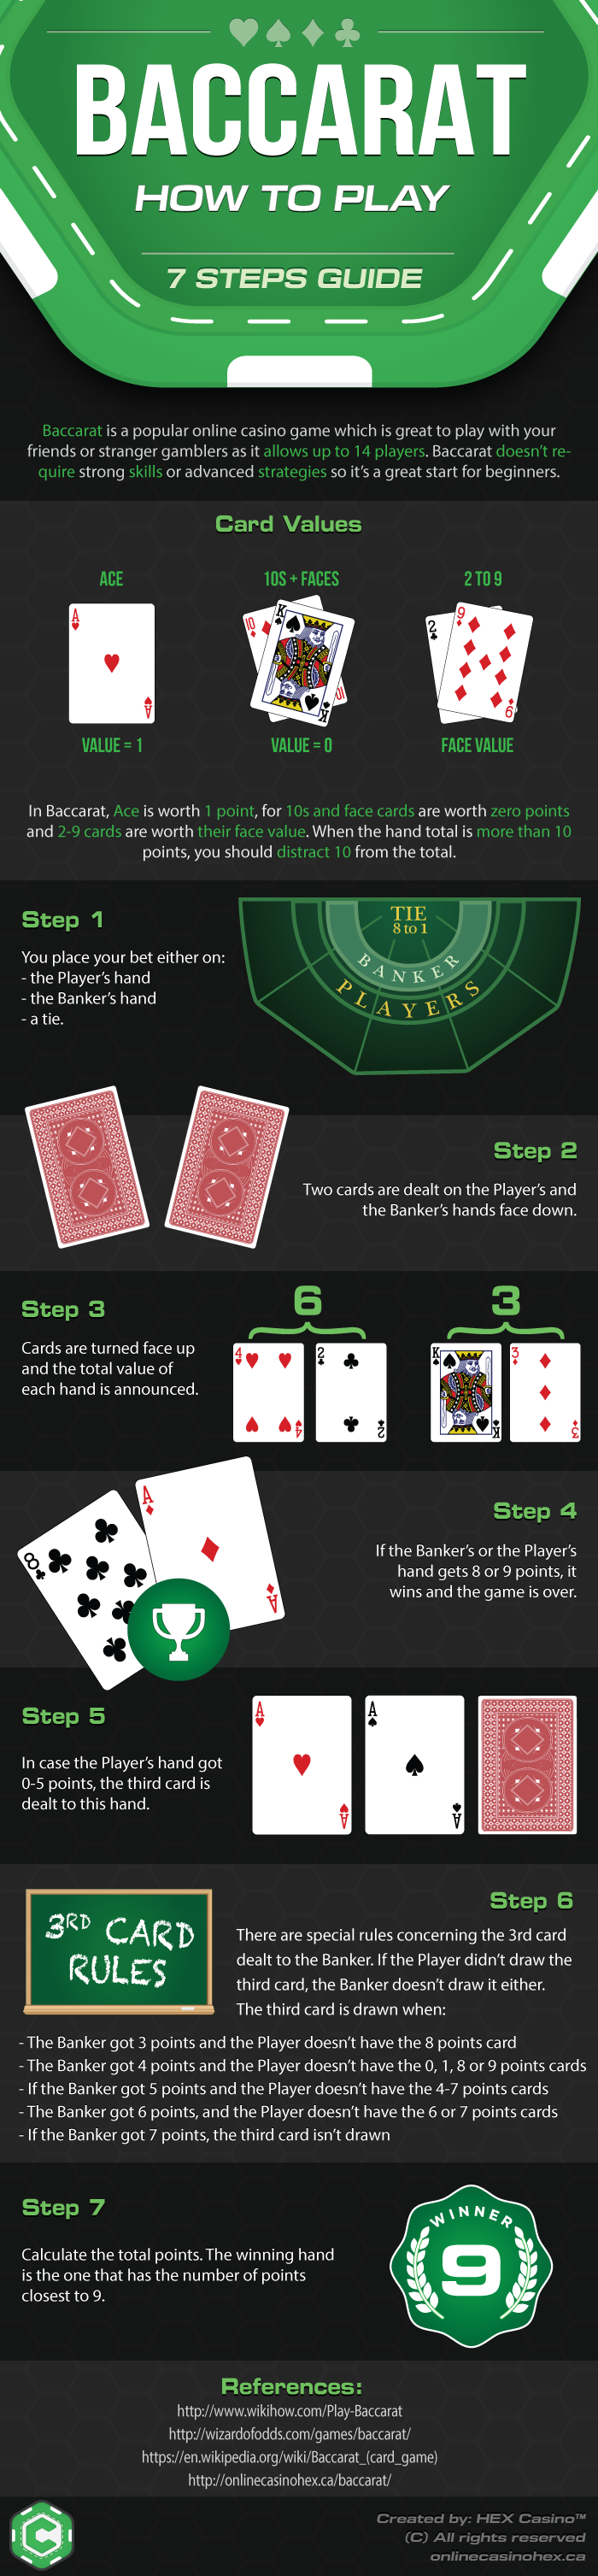 How to Play Baccarat Infographic by Online Casino HEX Canada